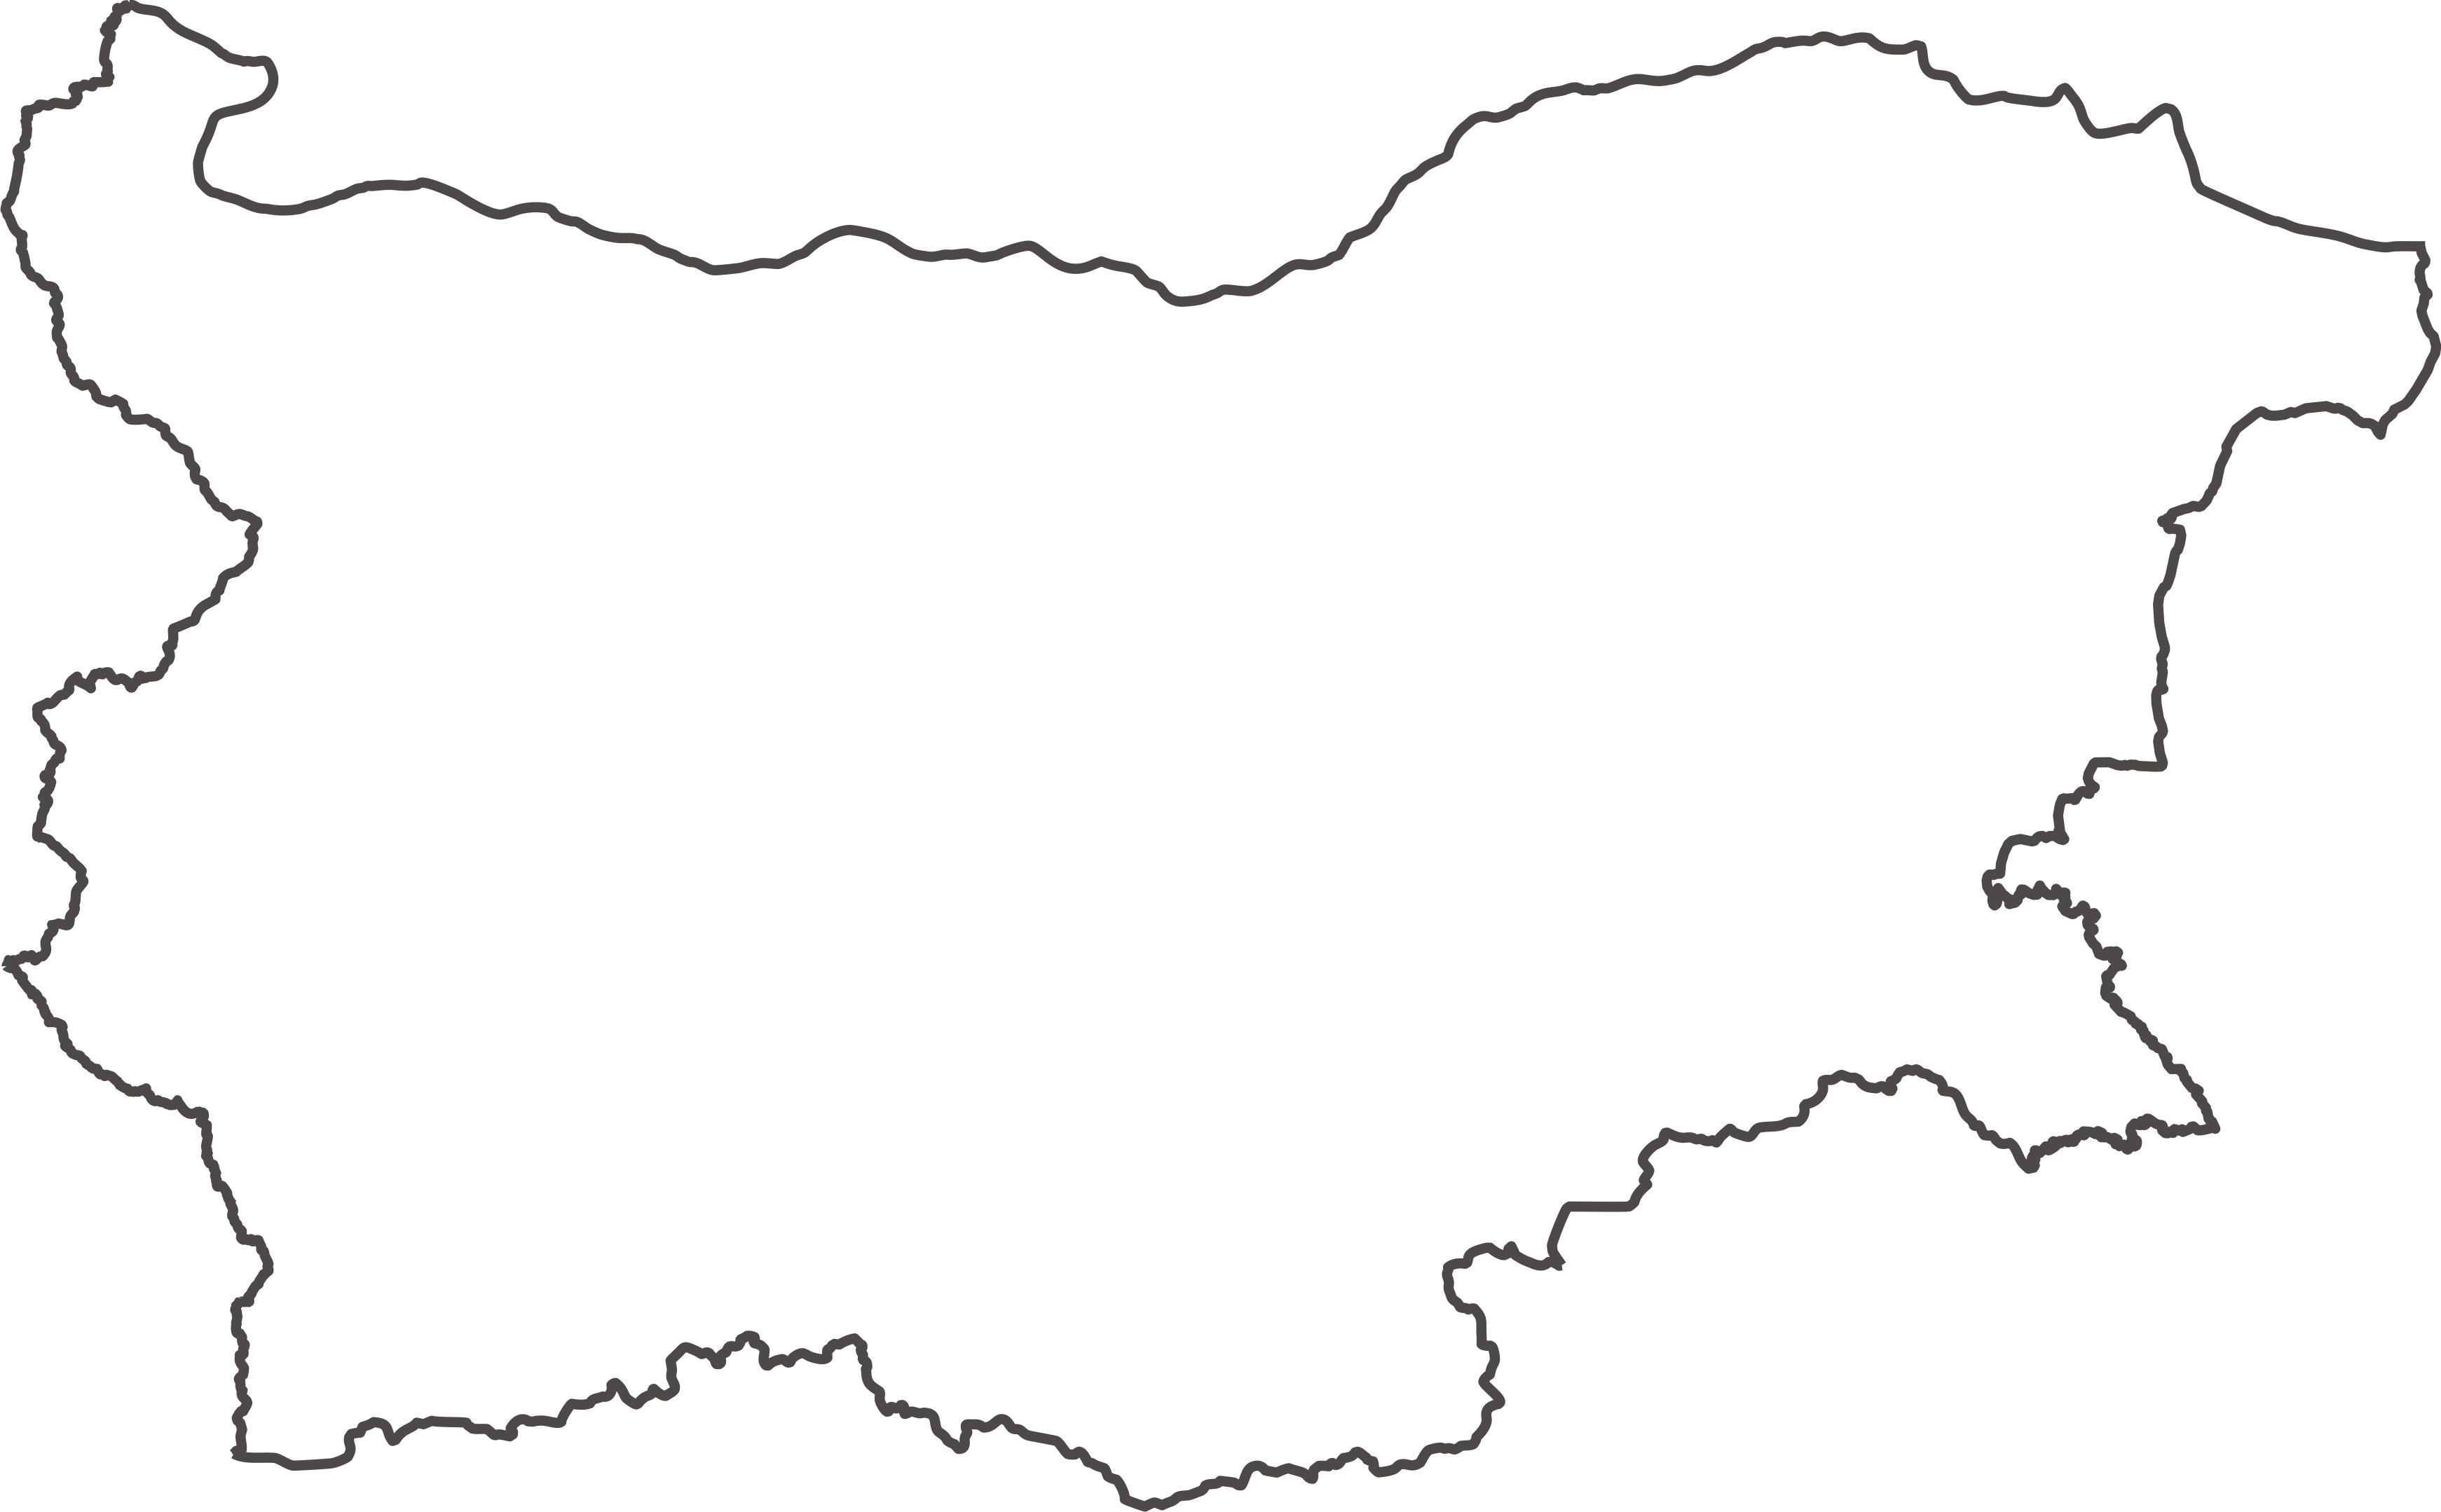 File:BG Map Outline.png - Wikimedia Commons